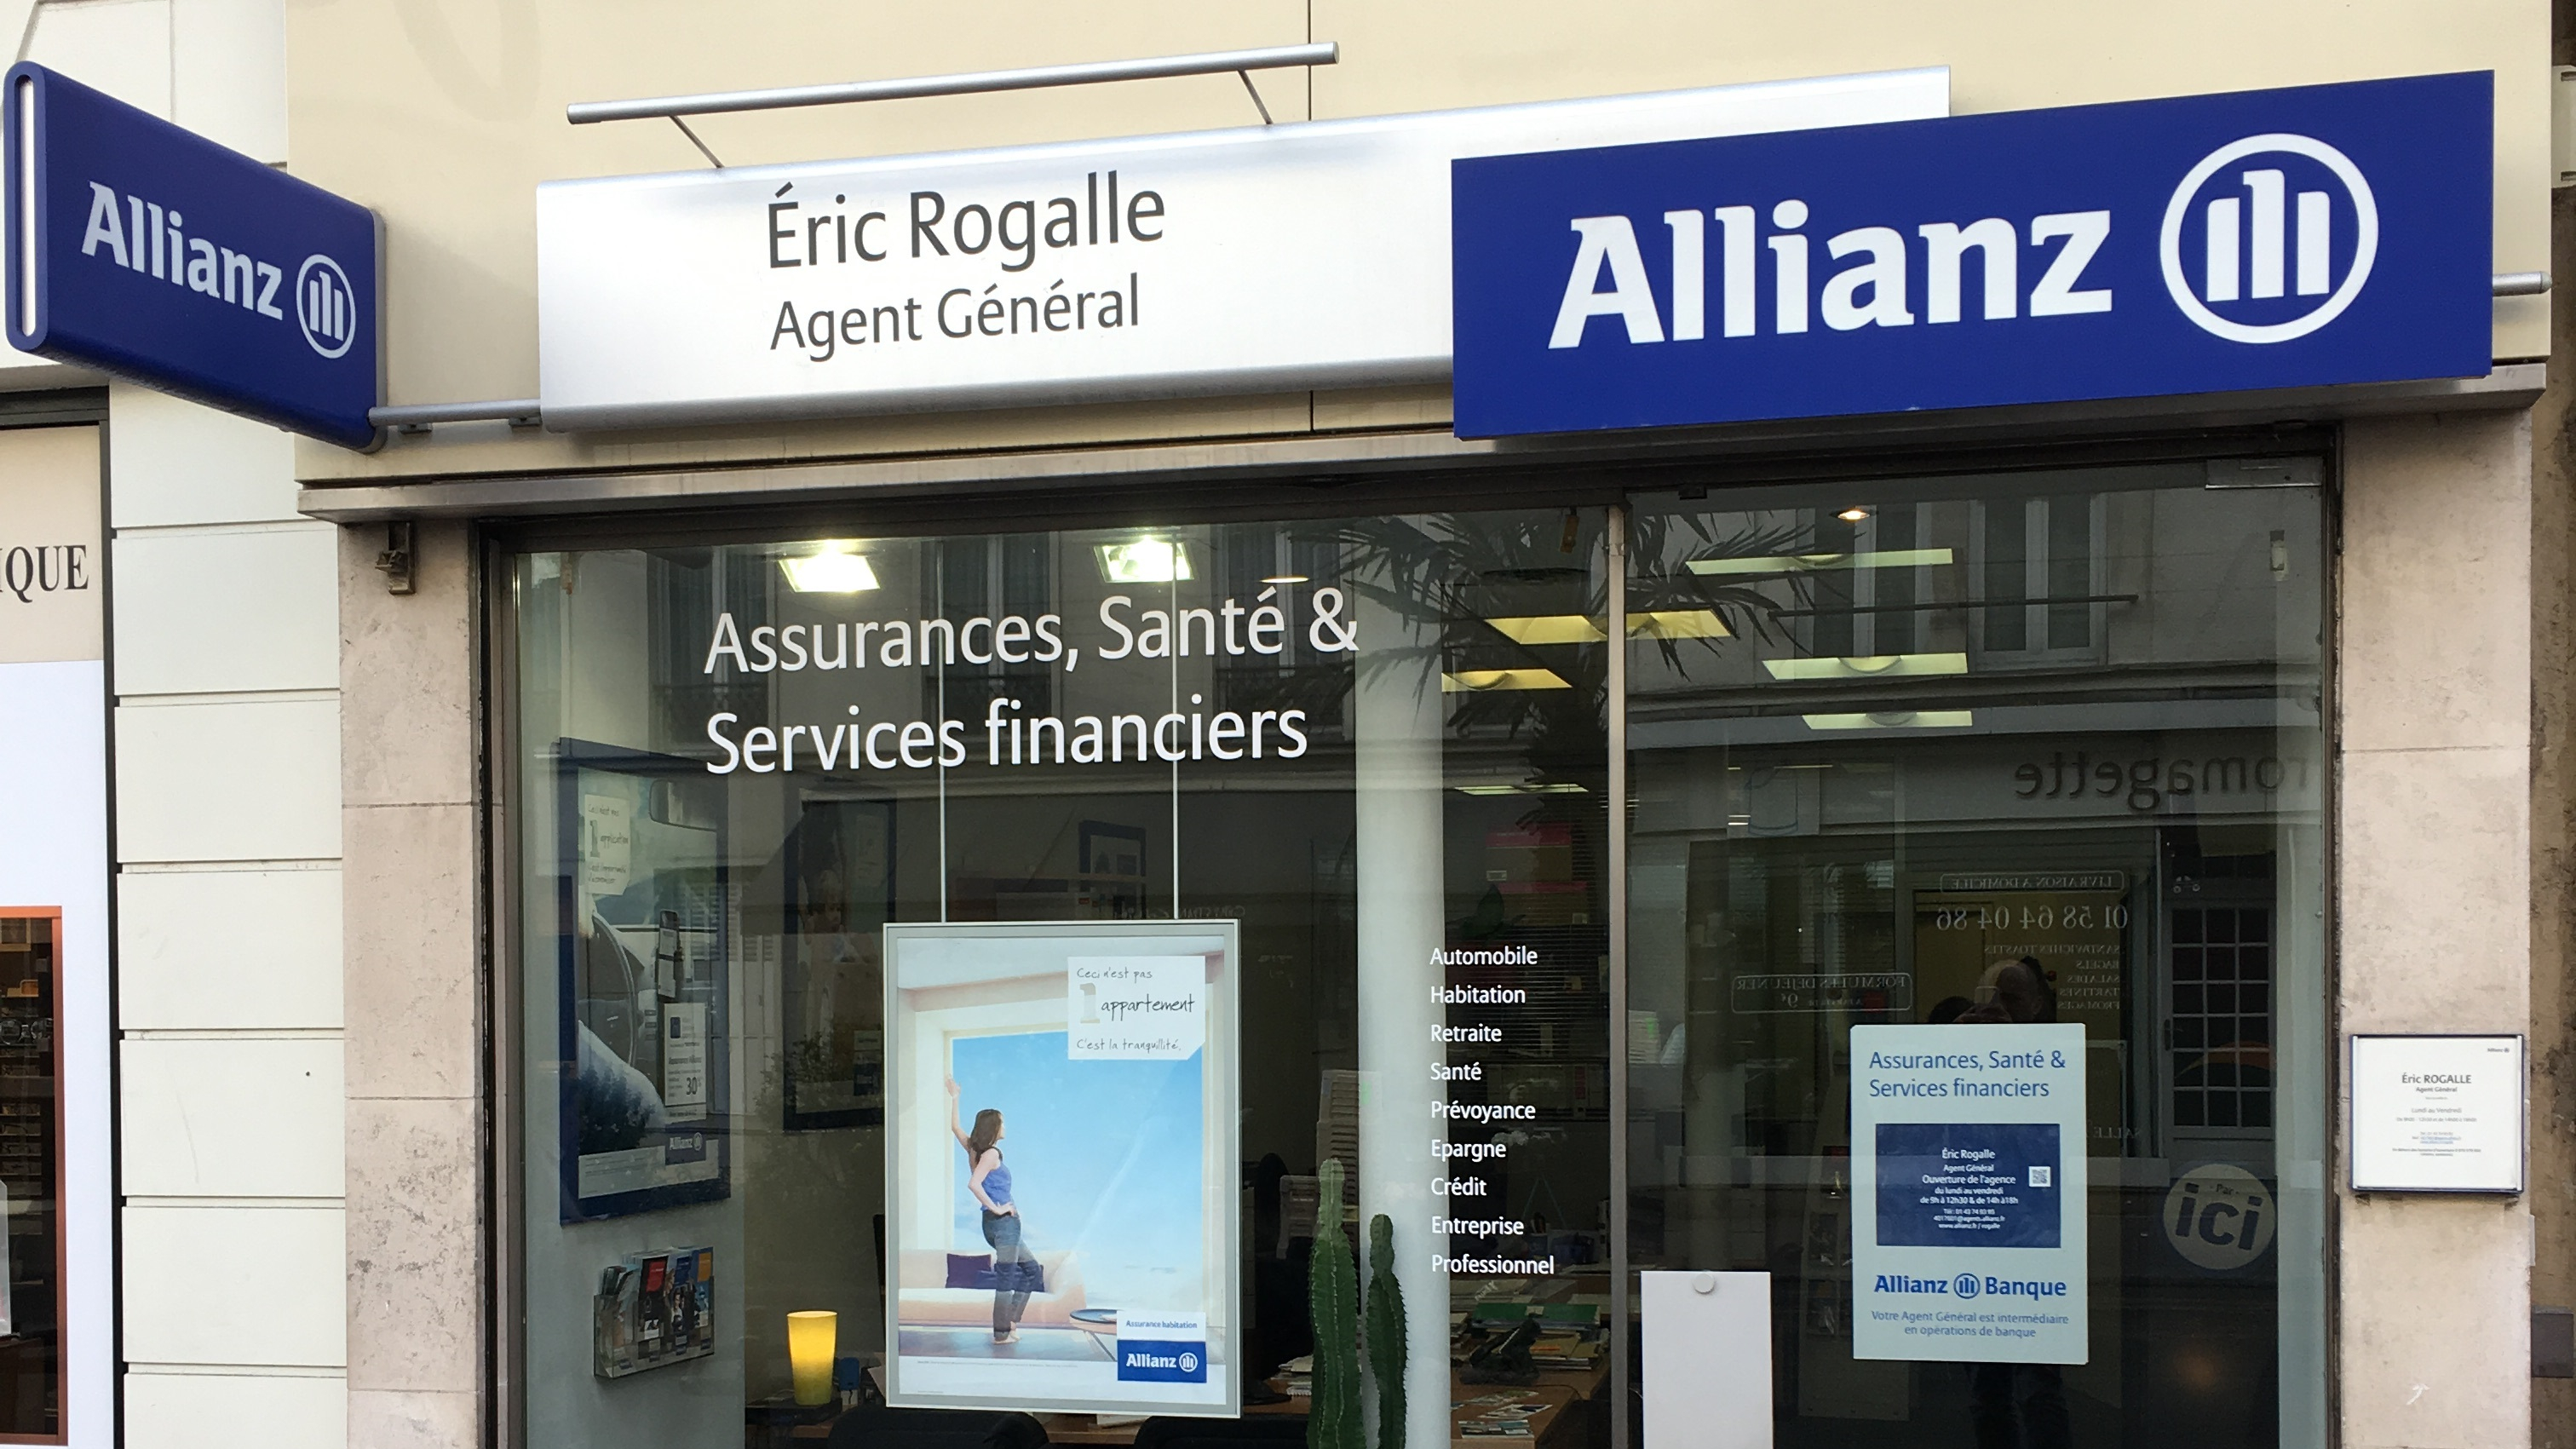 Allianz SAINT MANDE - Eric ROGALLE